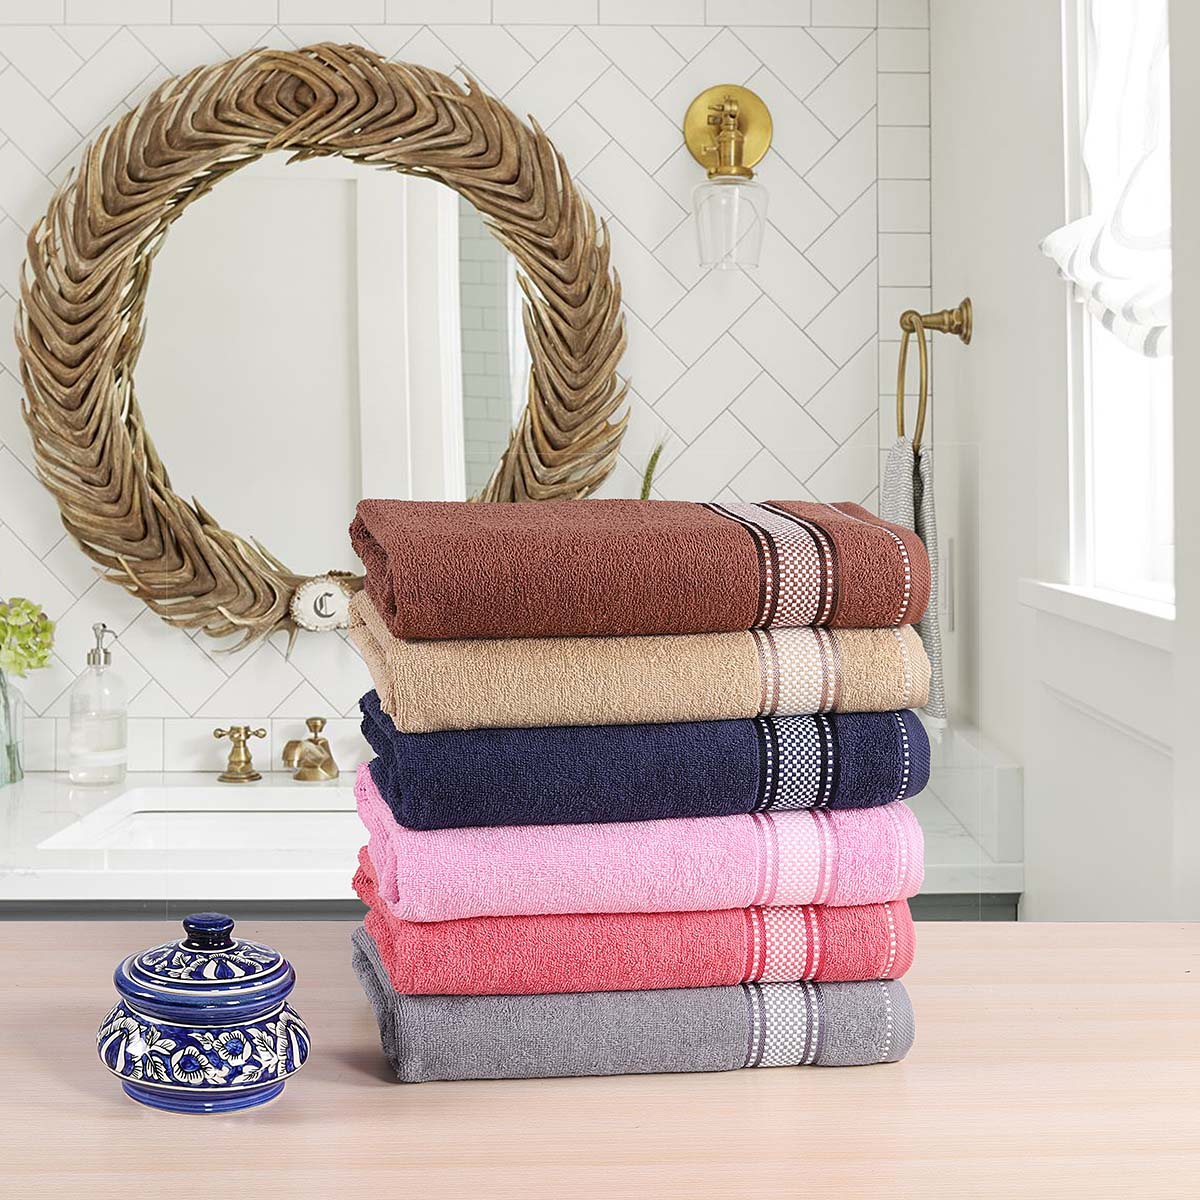 Noble Border Bath Towels of various colours stacked together